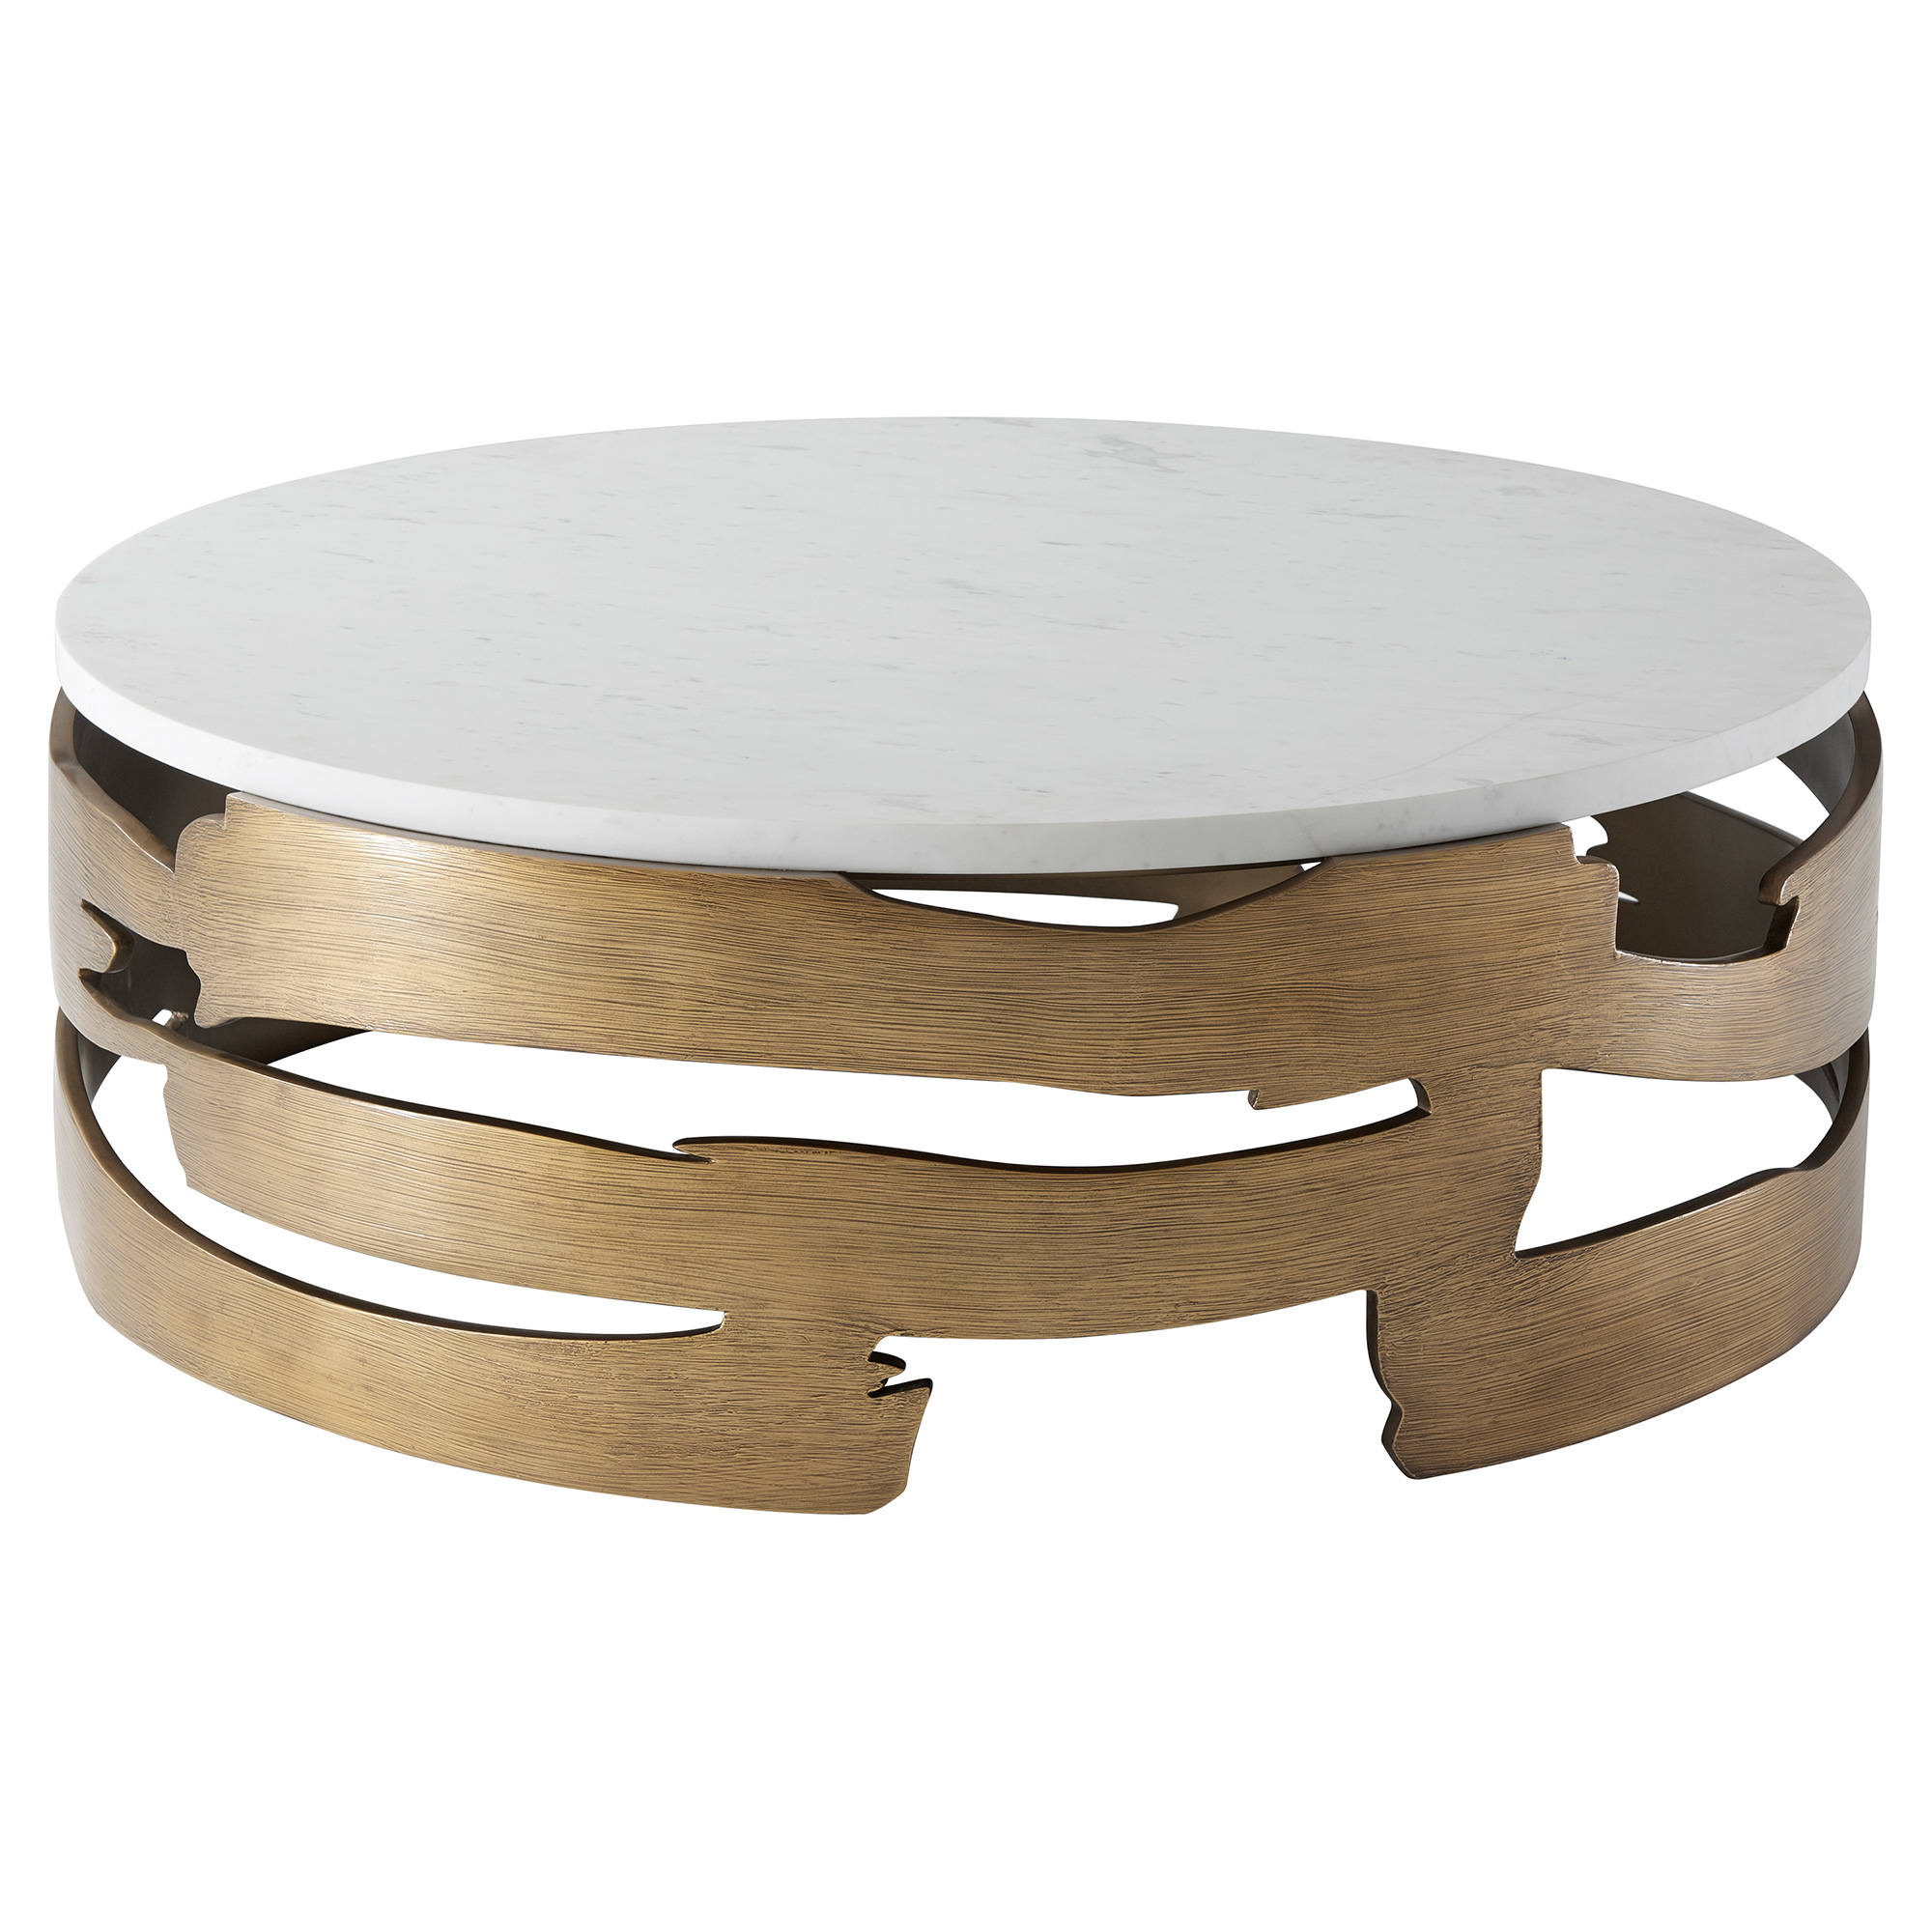 kalota tables table featured mitja stools baobab coffee with product